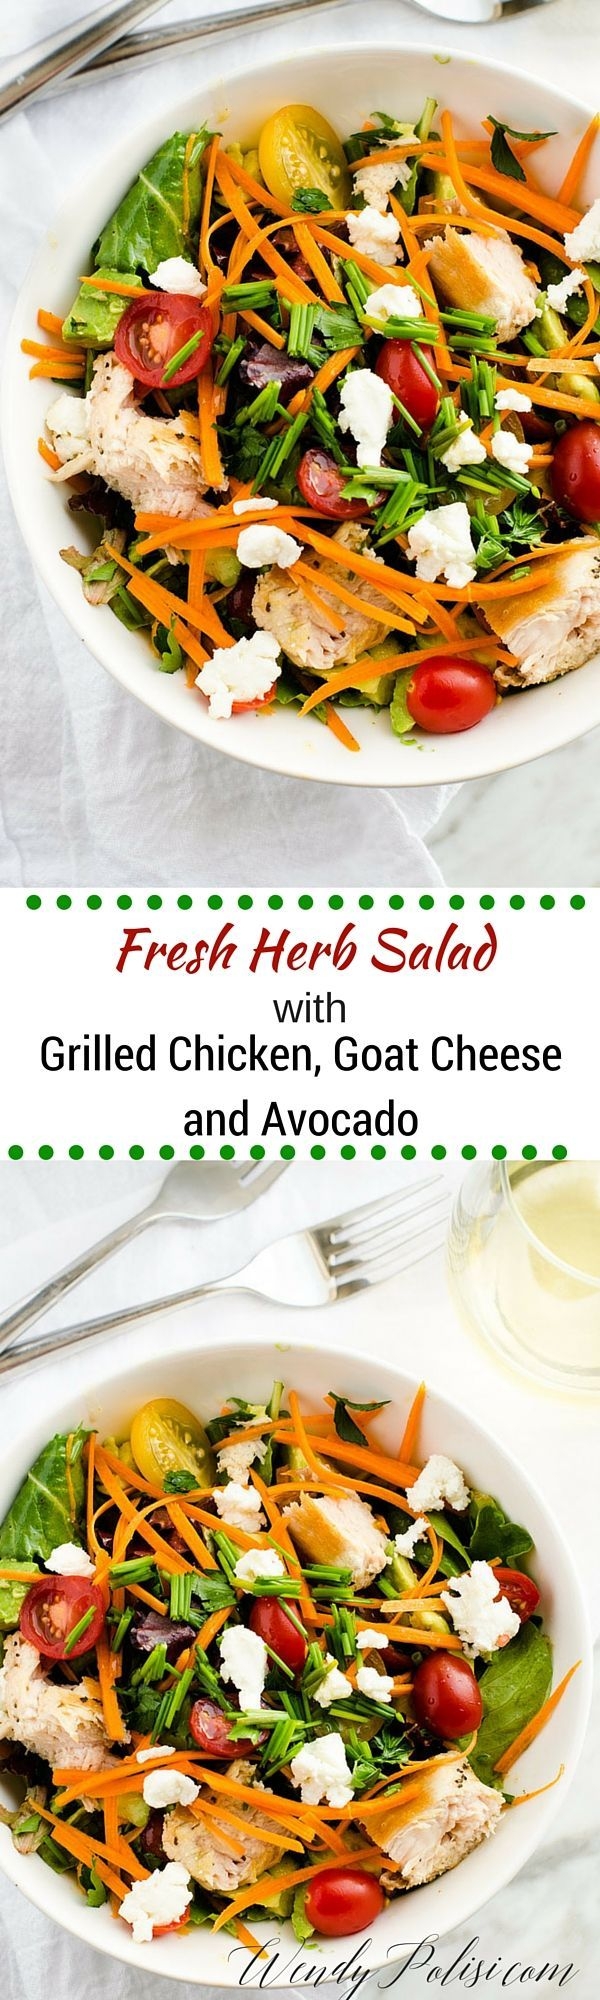 Fresh Herb Salad with Grilled Chicken, Goat Cheese &  Avocado - This Fresh Herb Salad with Grilled Chicken, Goat Cheese & Avocado is the perfect spring or summer meal!  Paired with a great bottle of wine, like Sequoia Grove Chardonnay, you have all the makings for a memorable evening. via @wendypolisi